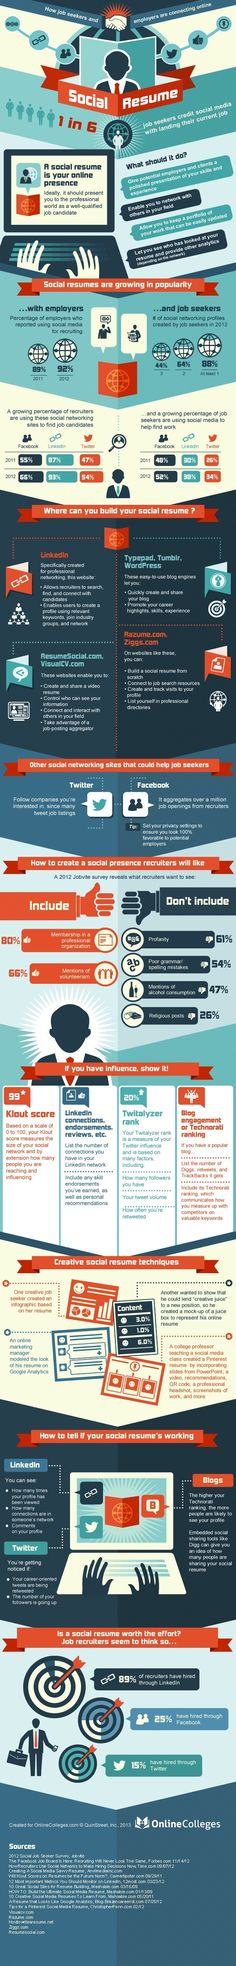 Why You Need a Social Resume (and How to Build One) | Infographic @ The Daily Muse. http://www.thedailymuse.com/job-search/why-you-need-a-social-resume-and-how-to-build-one/?goback=%2Egde_1915687_member_215612681